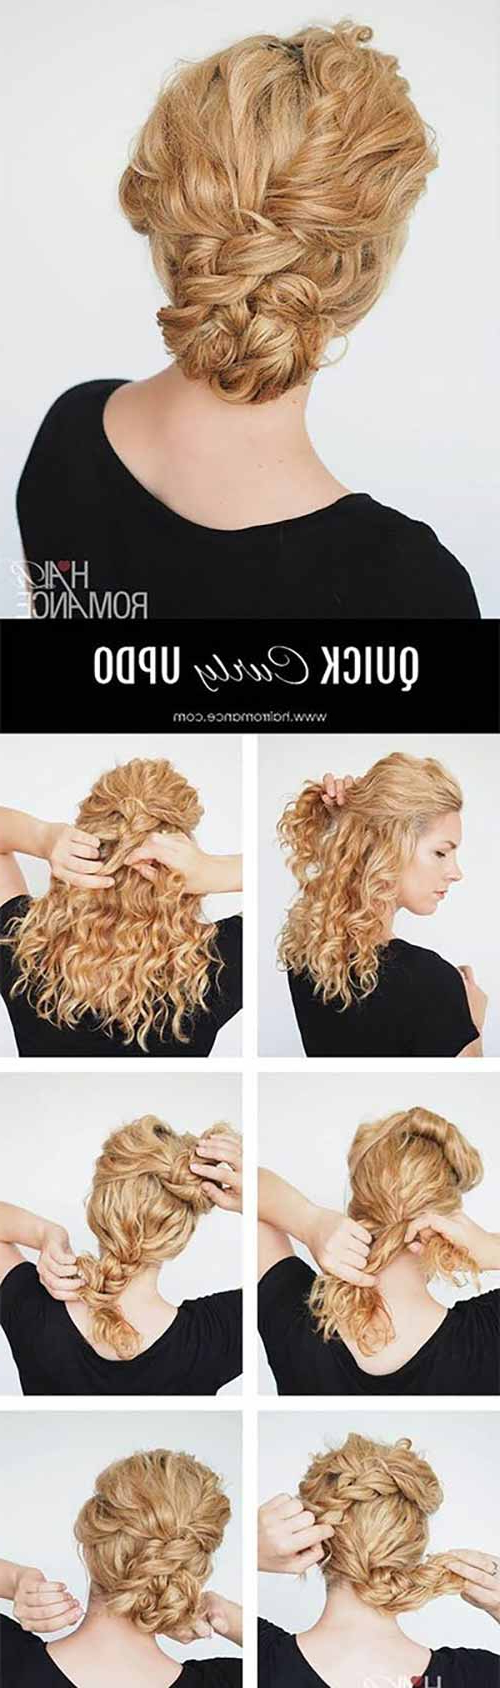 Popular Easy Curled Prom Updos For 20 Incredibly Stunning Diy Updos For Curly Hair (Gallery 9 of 20)